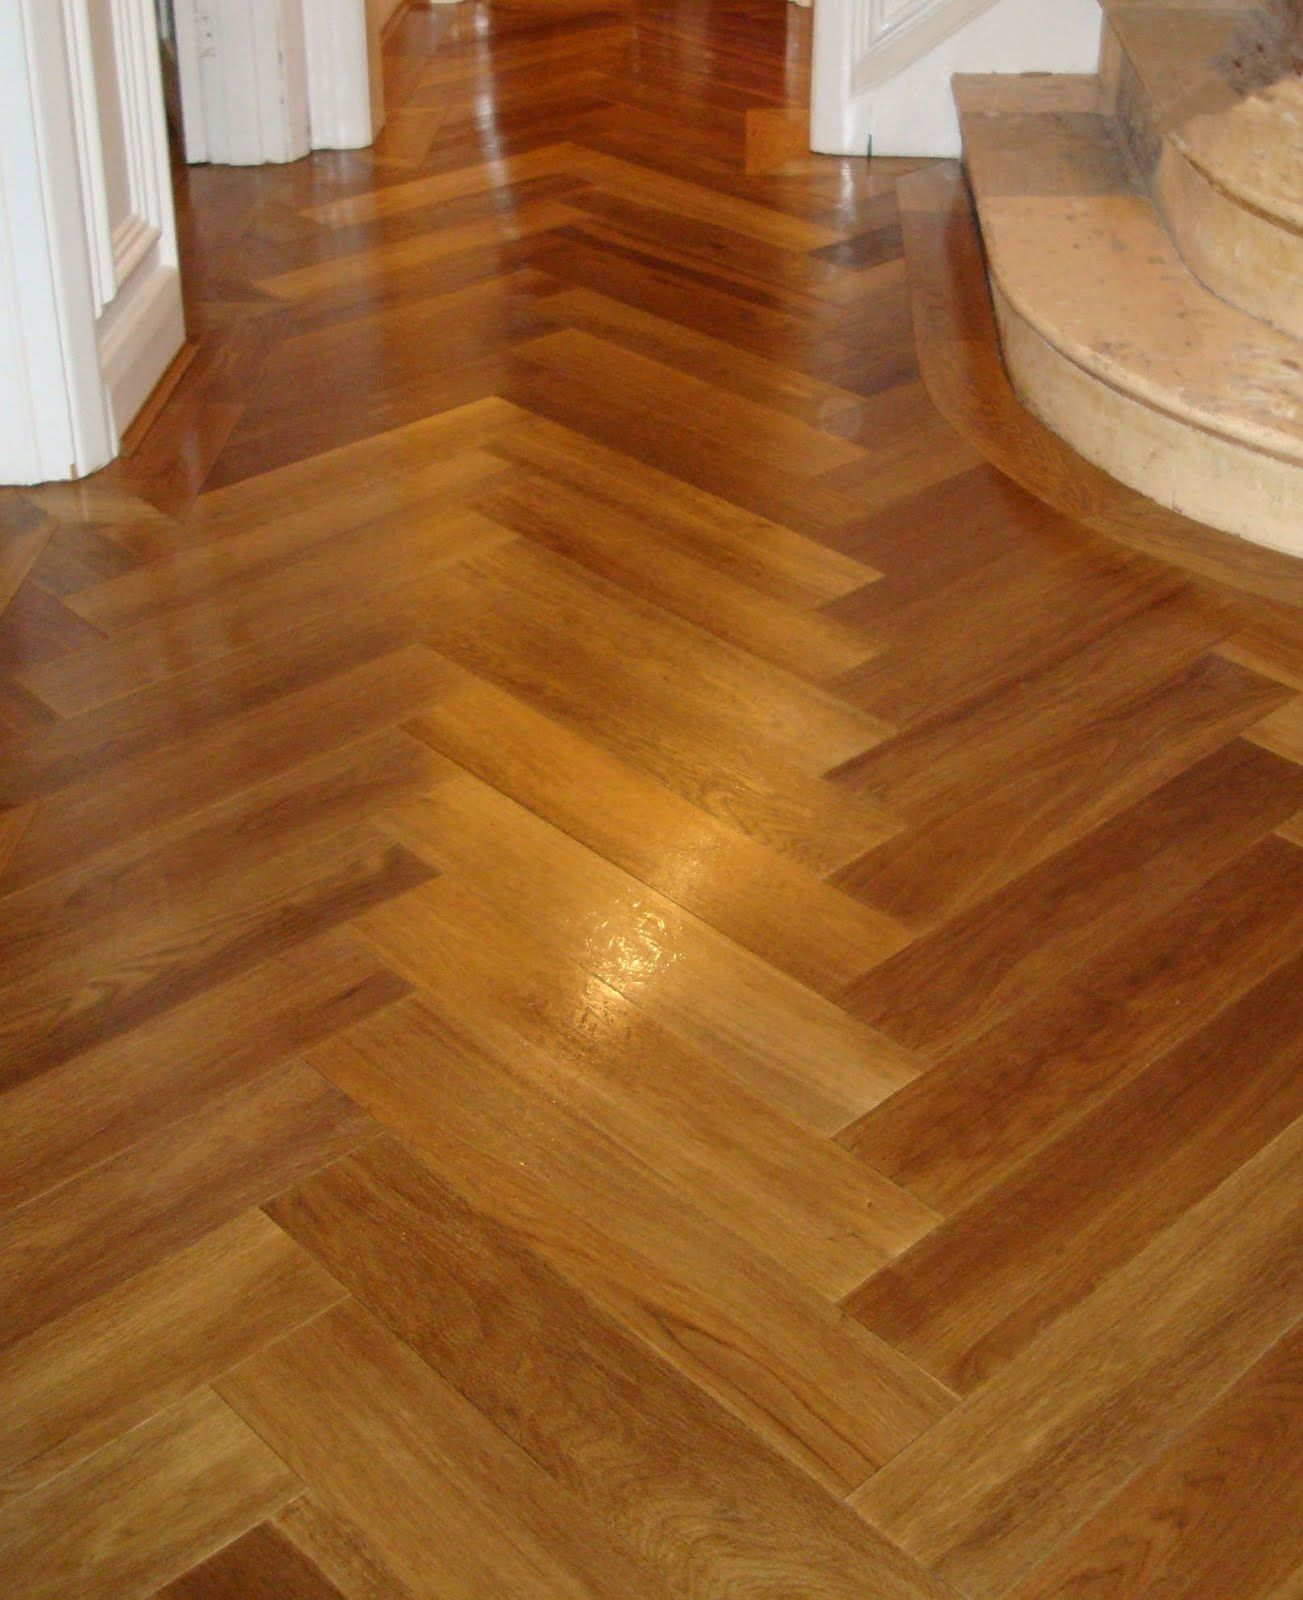 Wood flooring ideas wood floor wood floor design wood for Floor decoration designs